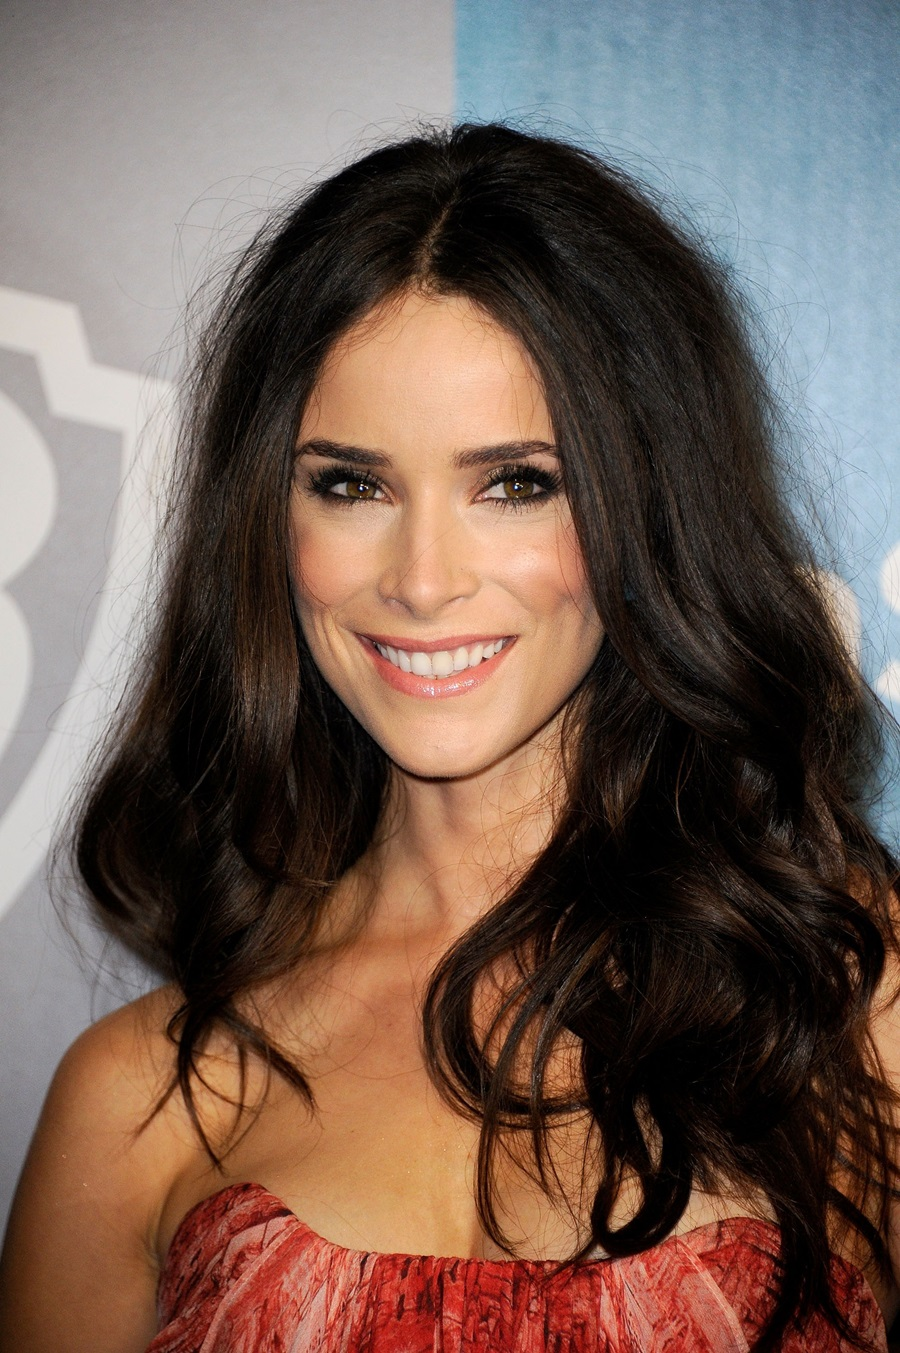 Snapchat Abigail Spencer nudes (95 photo), Pussy, Is a cute, Instagram, braless 2020